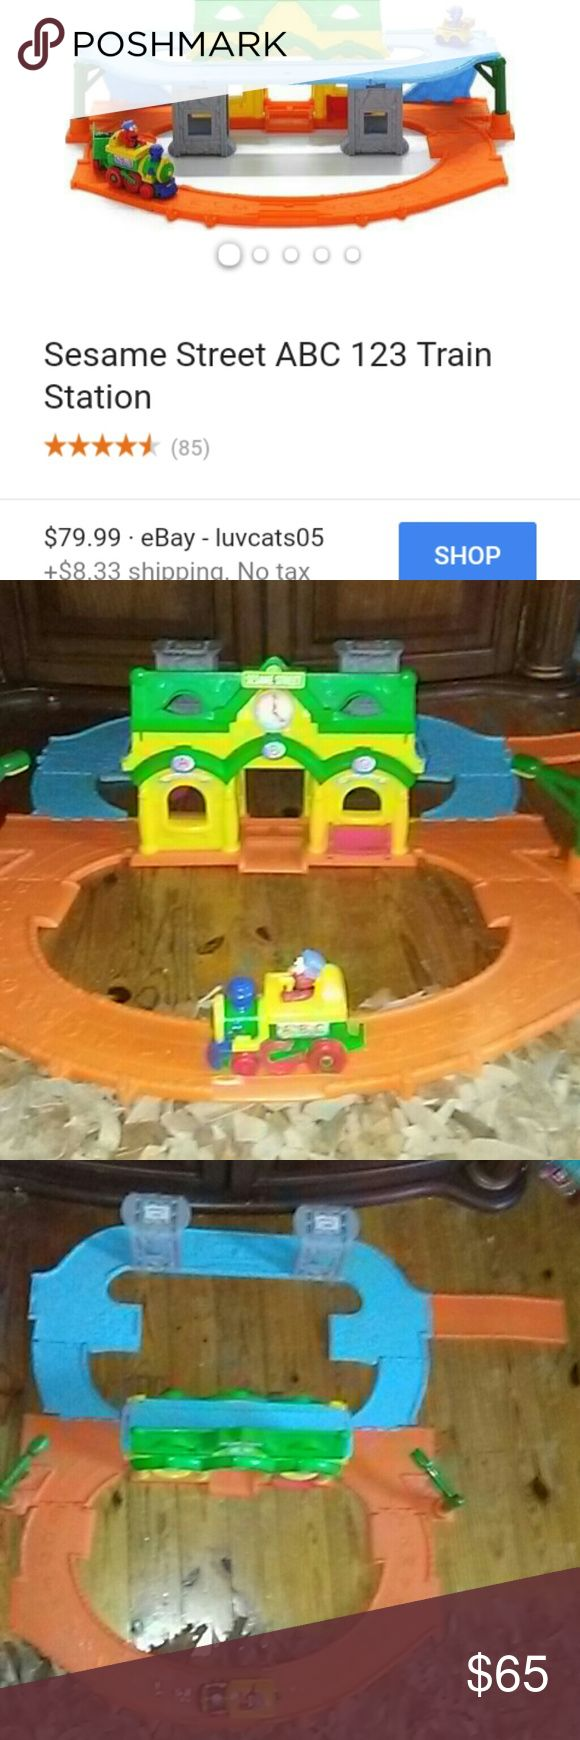 🚂Sesame Street Elmo Junction ABC Train Set Like new Sesame Street Elmo Junction ABC Train Set. Elmo sings songs. Has alphabet and numbers 1-20. Folds over to make 2 different track setups. Perfect for a gift! Sesame Street Accessories